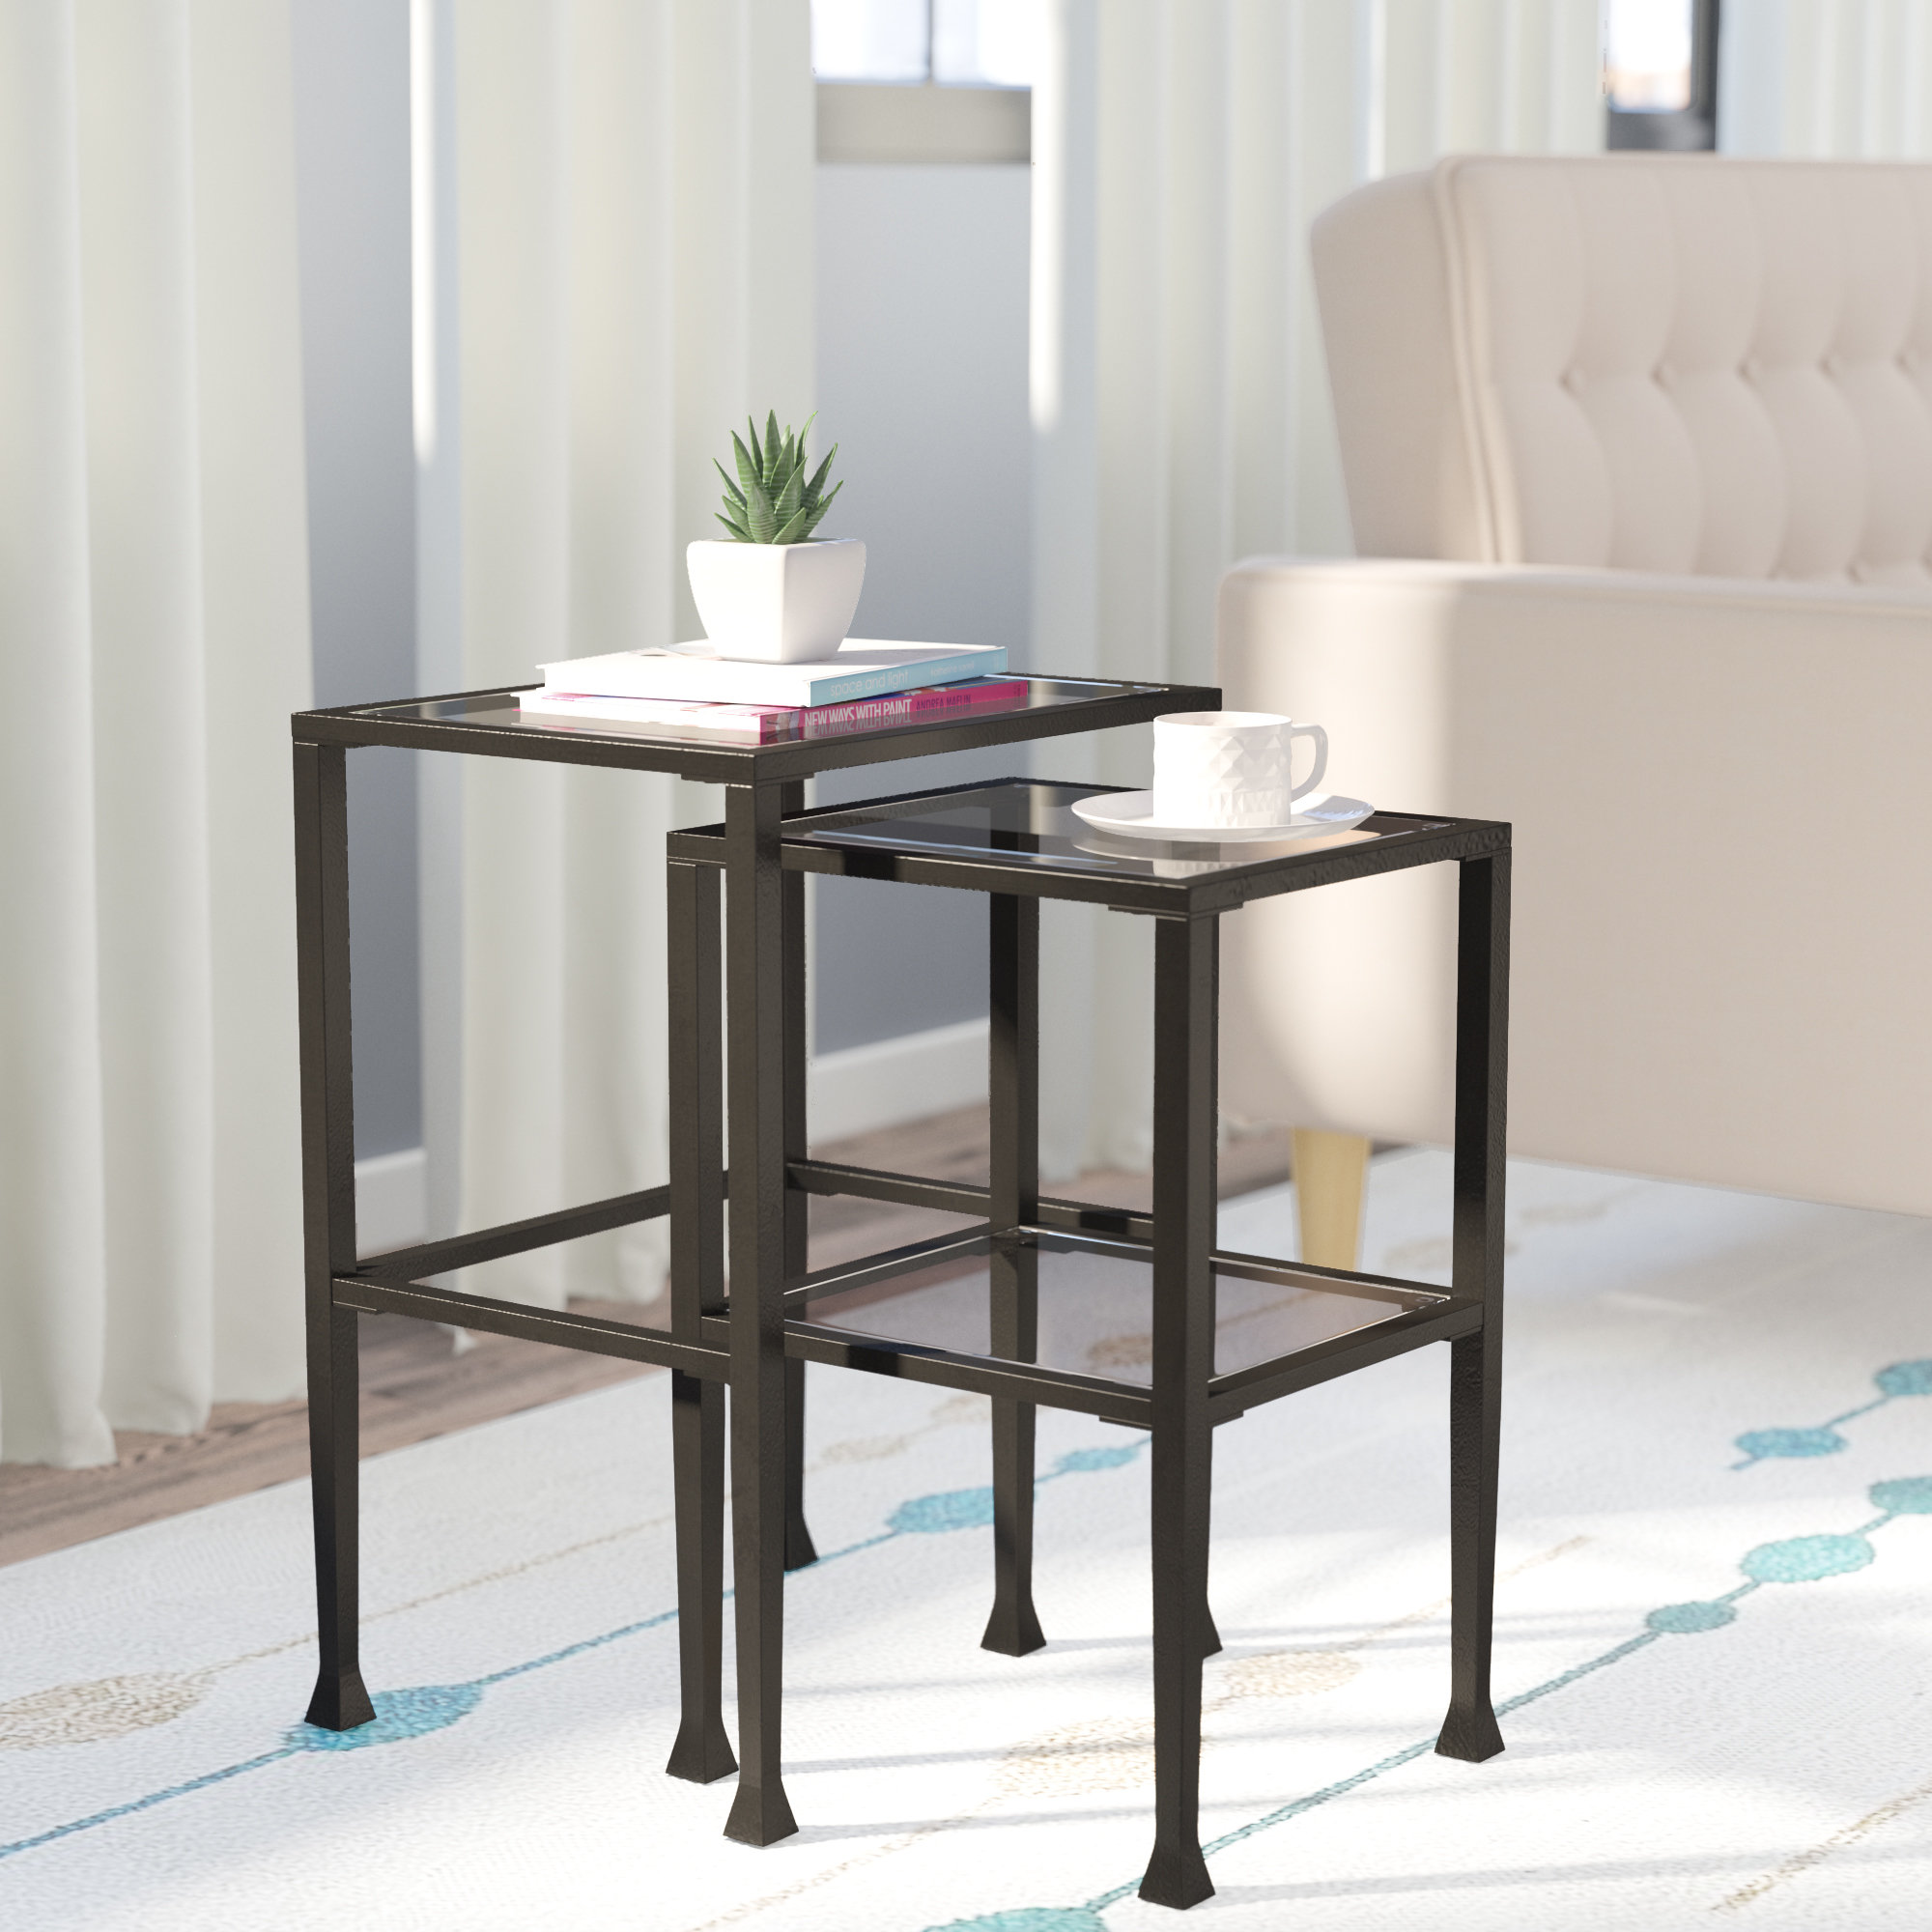 nesting tables you love sabrina piece glass end stanley furniture warranty grey living room with brown leather couch mirrored coffee table target fire pit clearance extra large